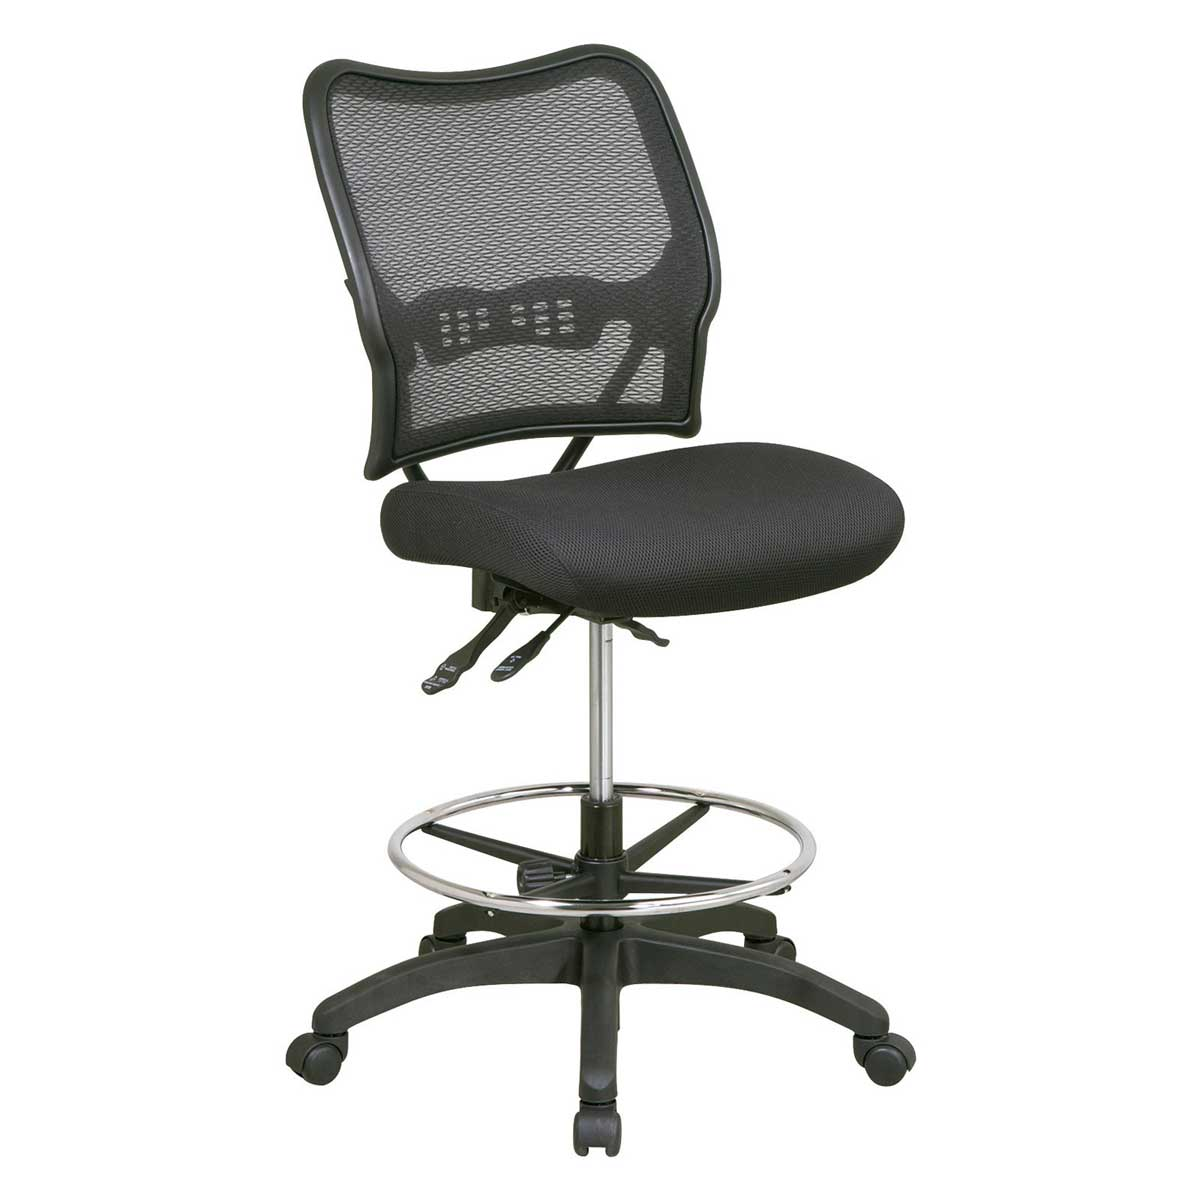 Ergonomic Computer Chair Office Chairs Best Office Chairs For Back Support